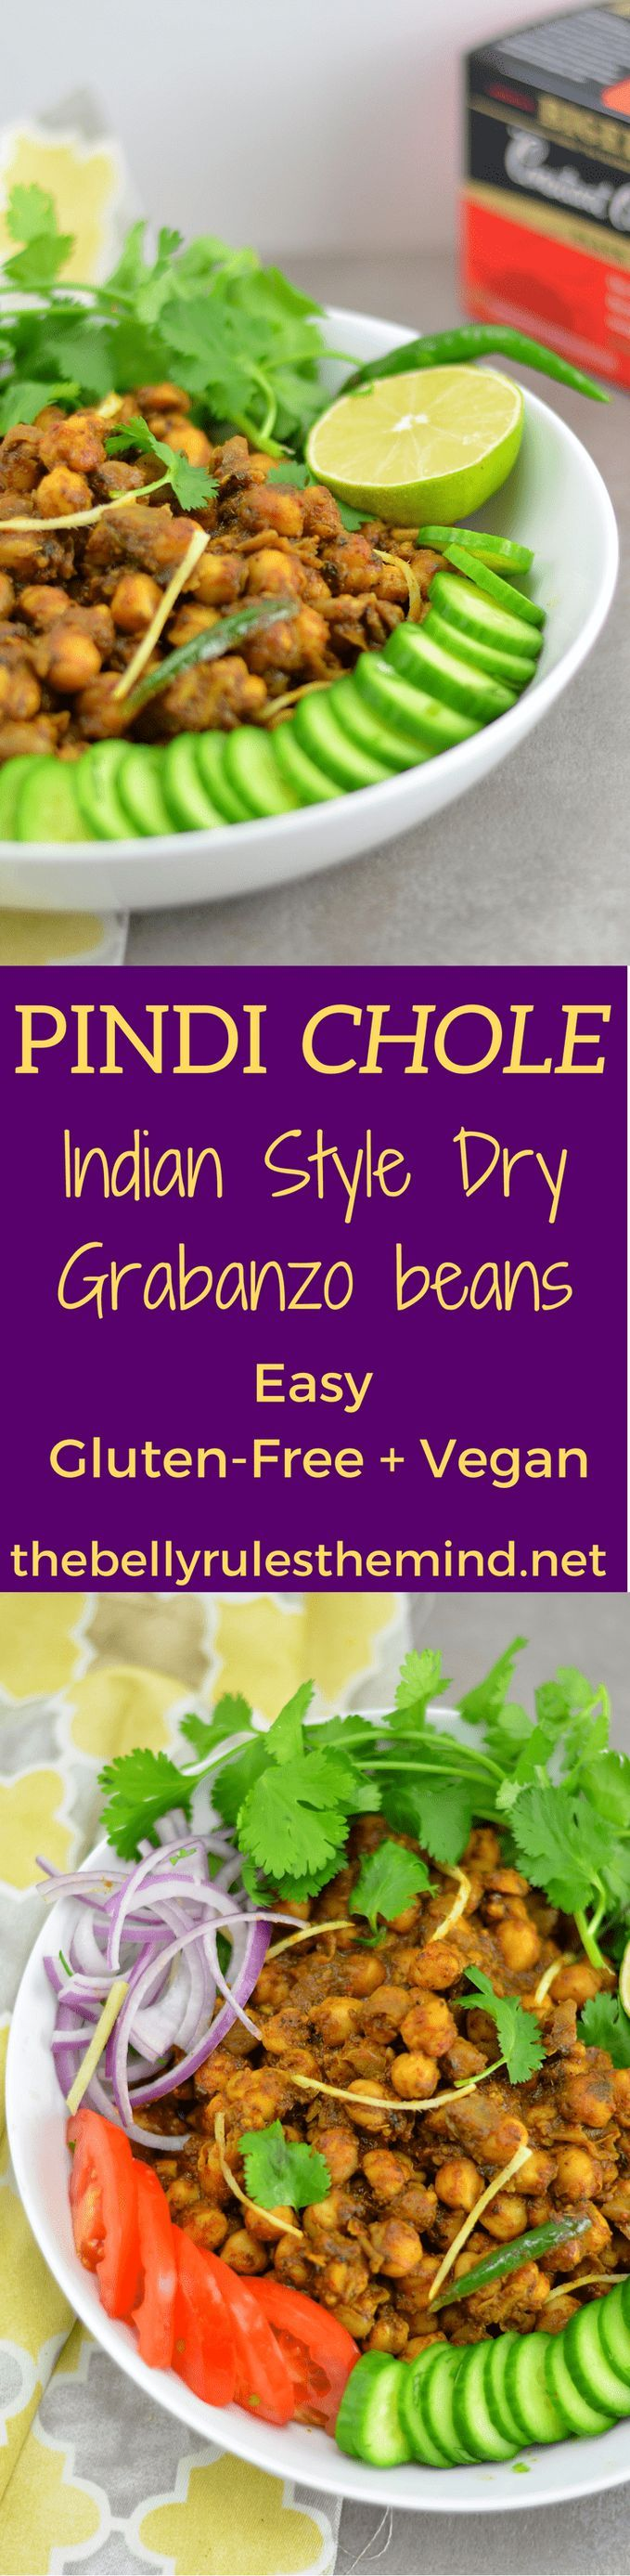 This shop has been compensated by Collective Bias, Inc. and its advertiser. All opinions are mine alone. #TeaProudly #CollectiveBias This Pindi Chole (Garbanzo beans in Indian spices) recipe is known for its authentic spicy flavors and mild sour taste. Pindi chole is usually dark brown in color & dry. This dish will leave a burst of flavors on your taste buds! There is a secret ingredient in the recipe that may surprise a lot of our readers. To know more about it, read on. We love our tea...